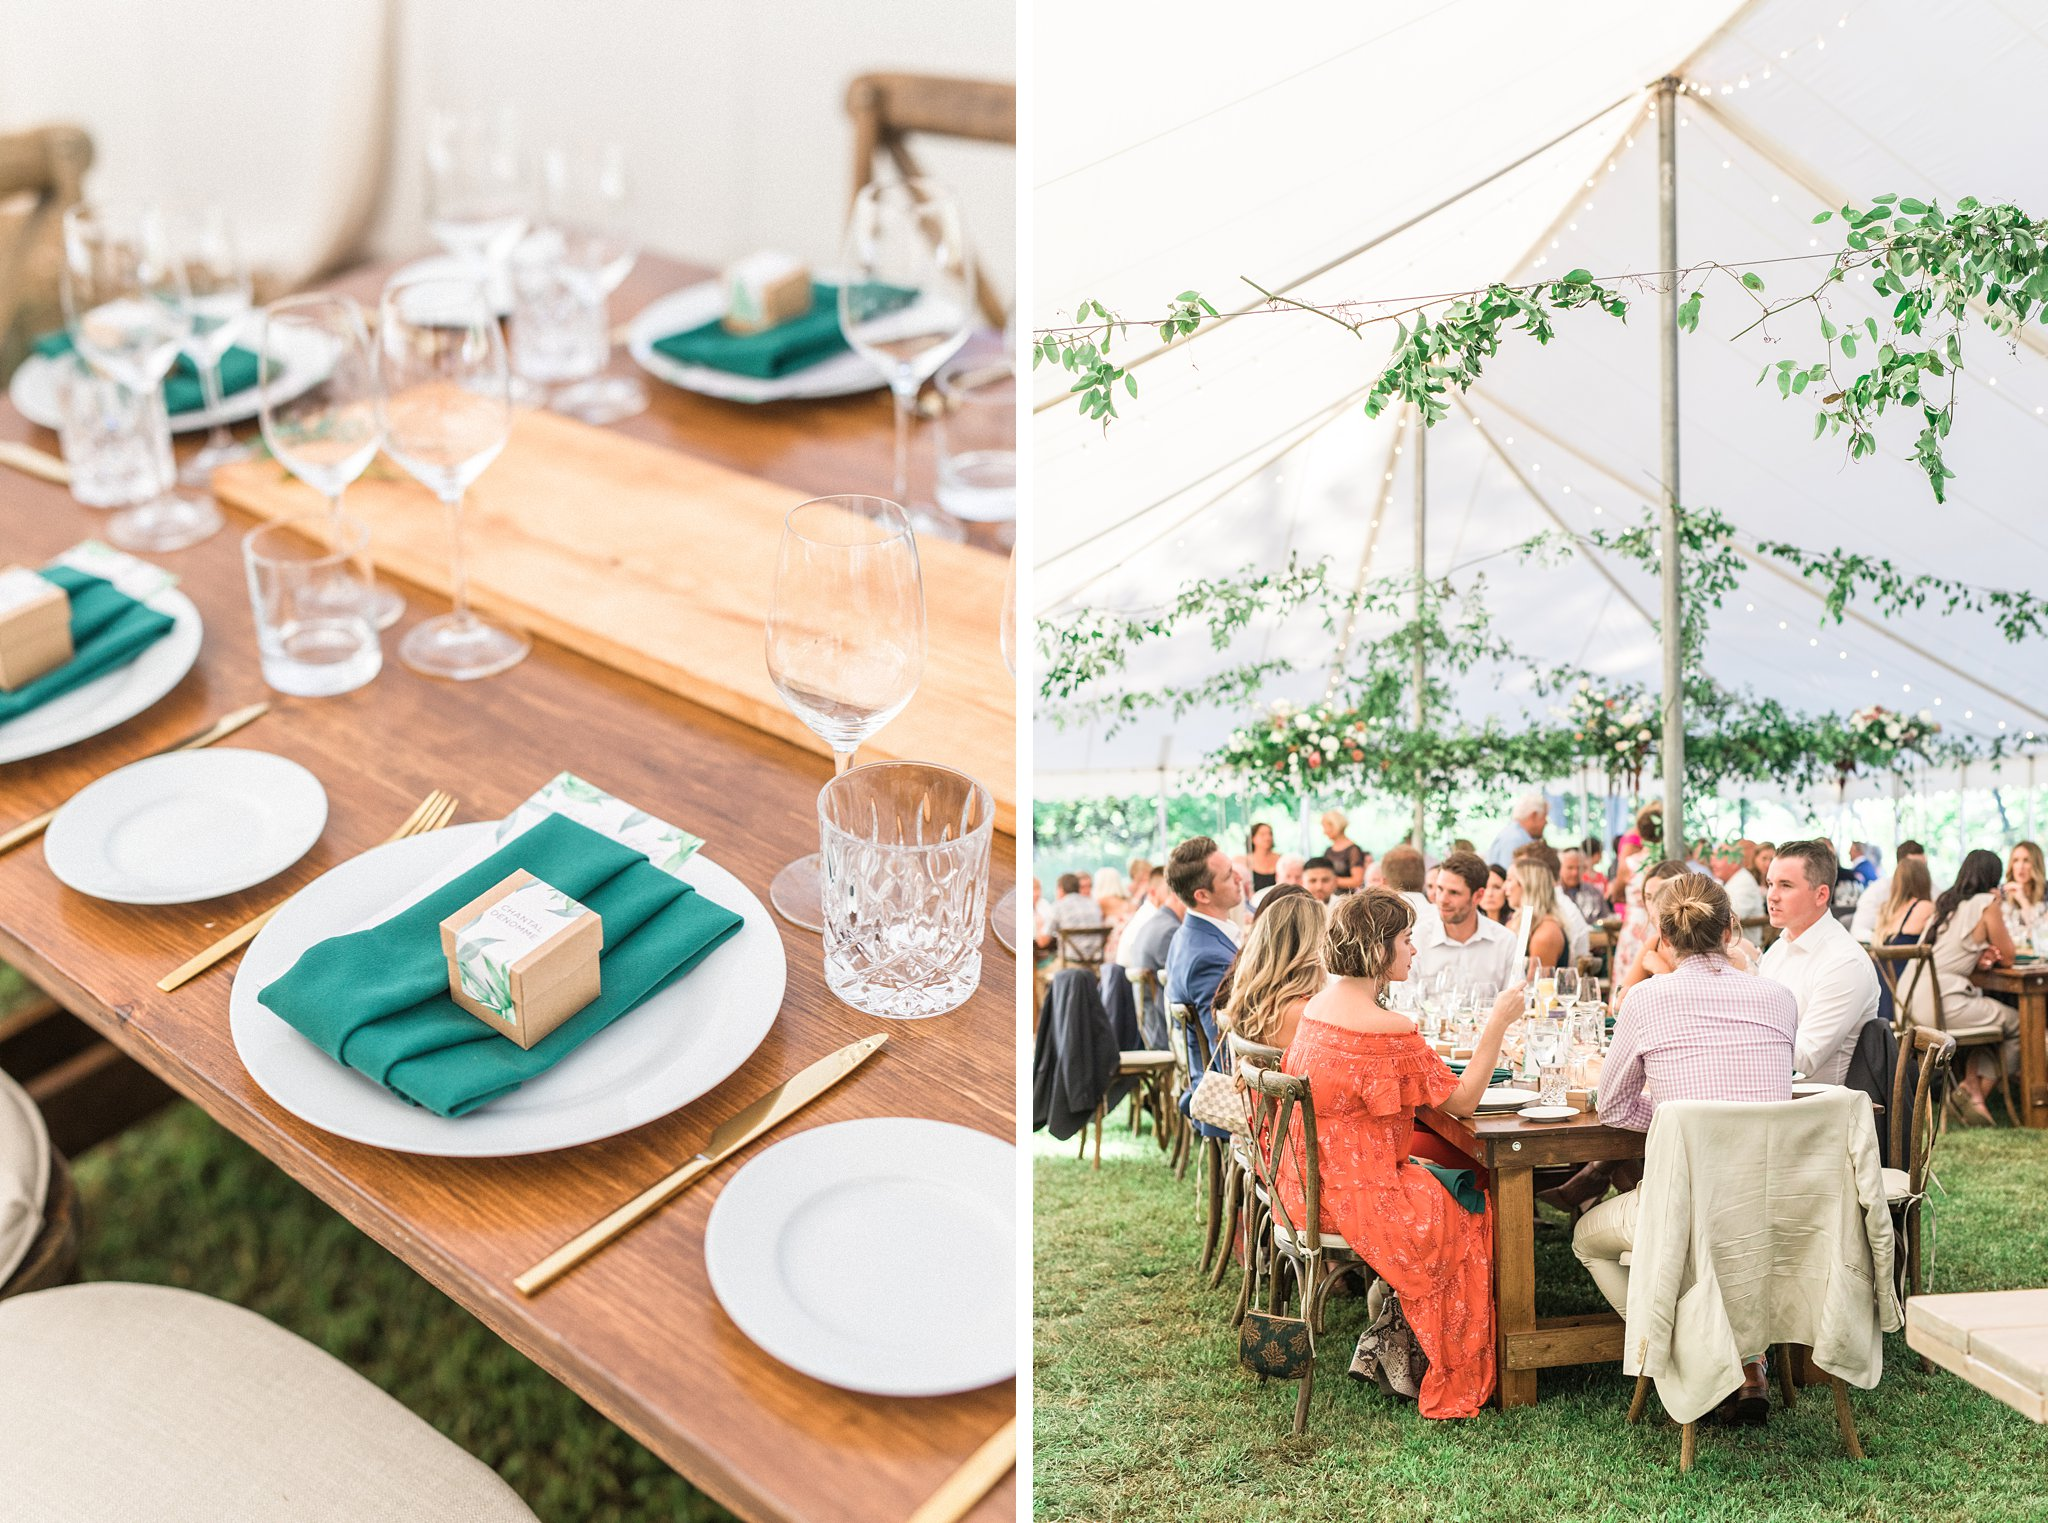 Guests under wedding tent, Private Estate Wedding Photos, Amy Pinder Photography